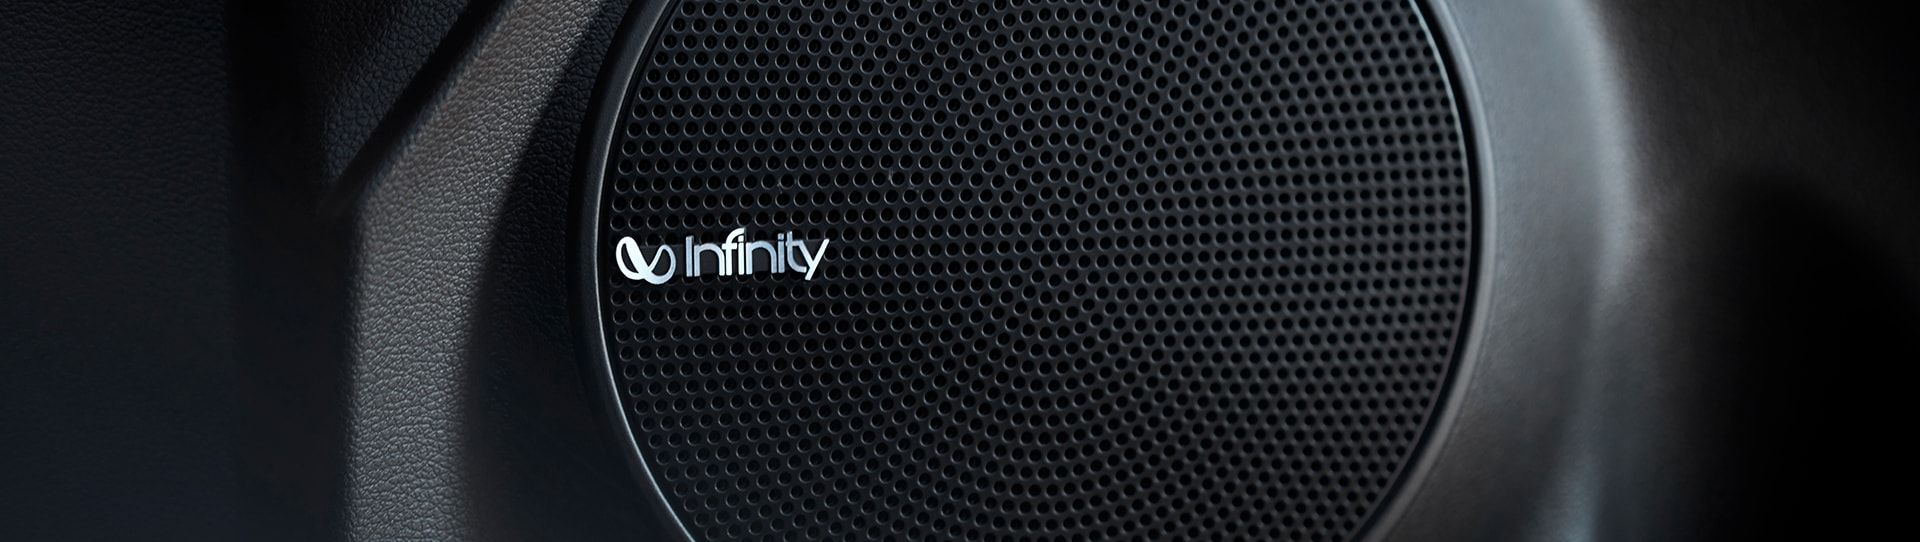 Infinity® Sound System in the 2019 Kona